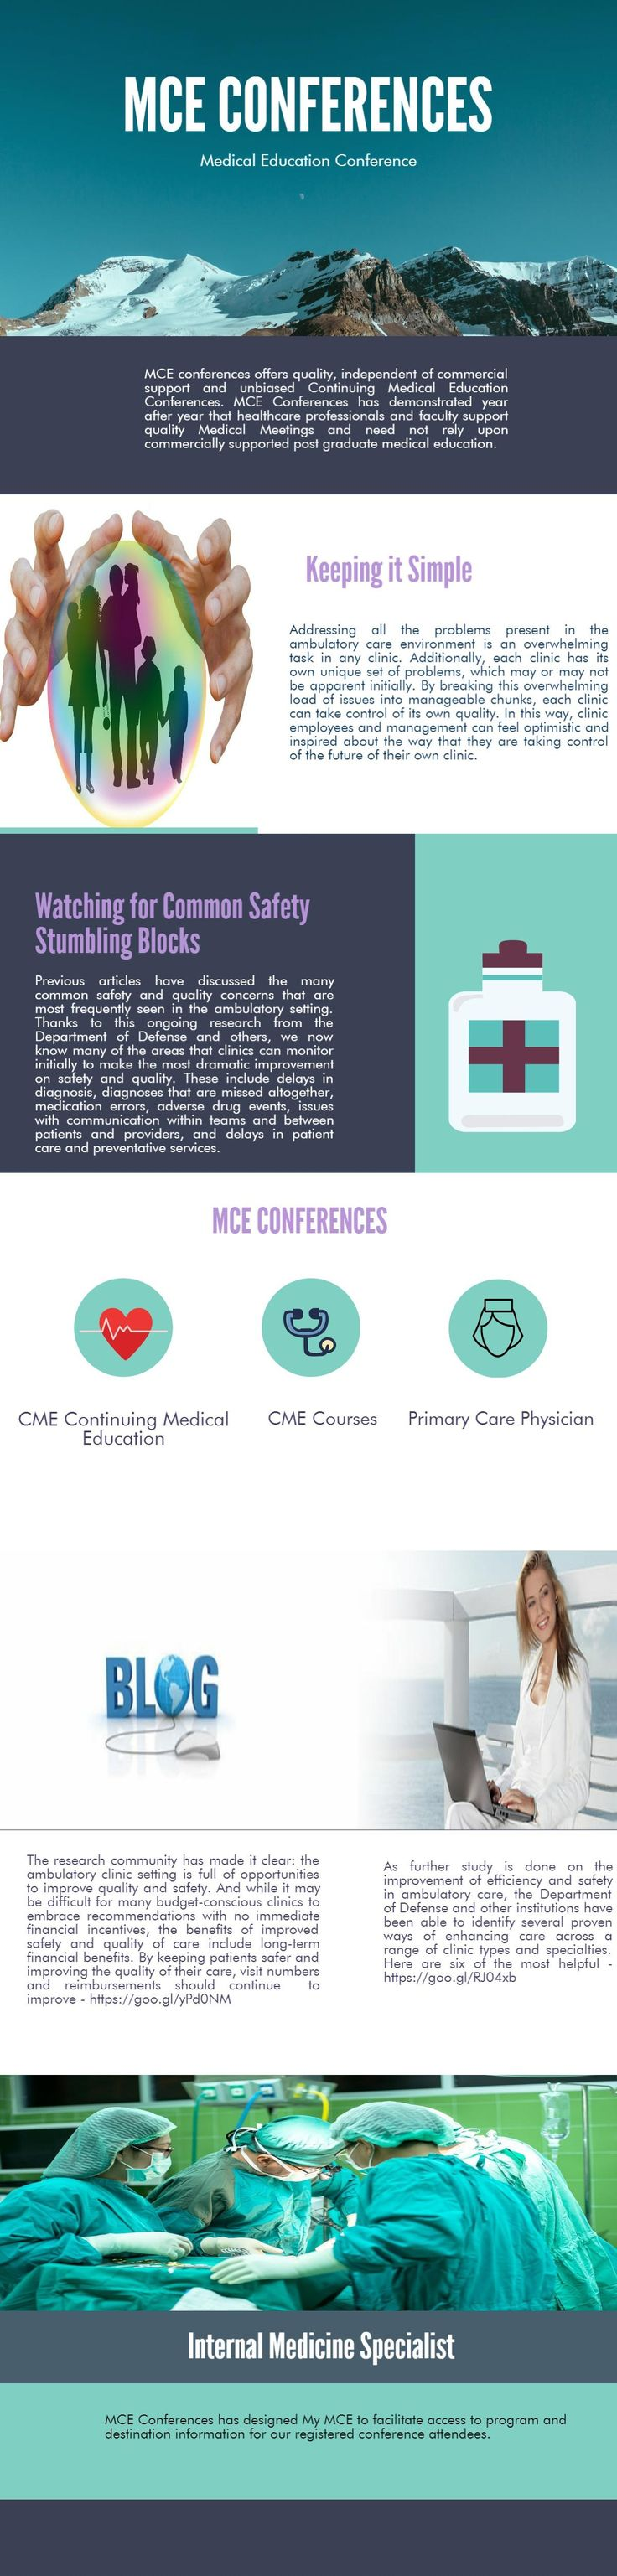 MCE conferences offers quality, independent of commercial support and unbiased Continuing Medical Education Conferences. MCE Conferences has demonstrated year after year that healthcare professionals and faculty support quality Medical Meetings and need not rely upon commercially supported post graduate medical education.